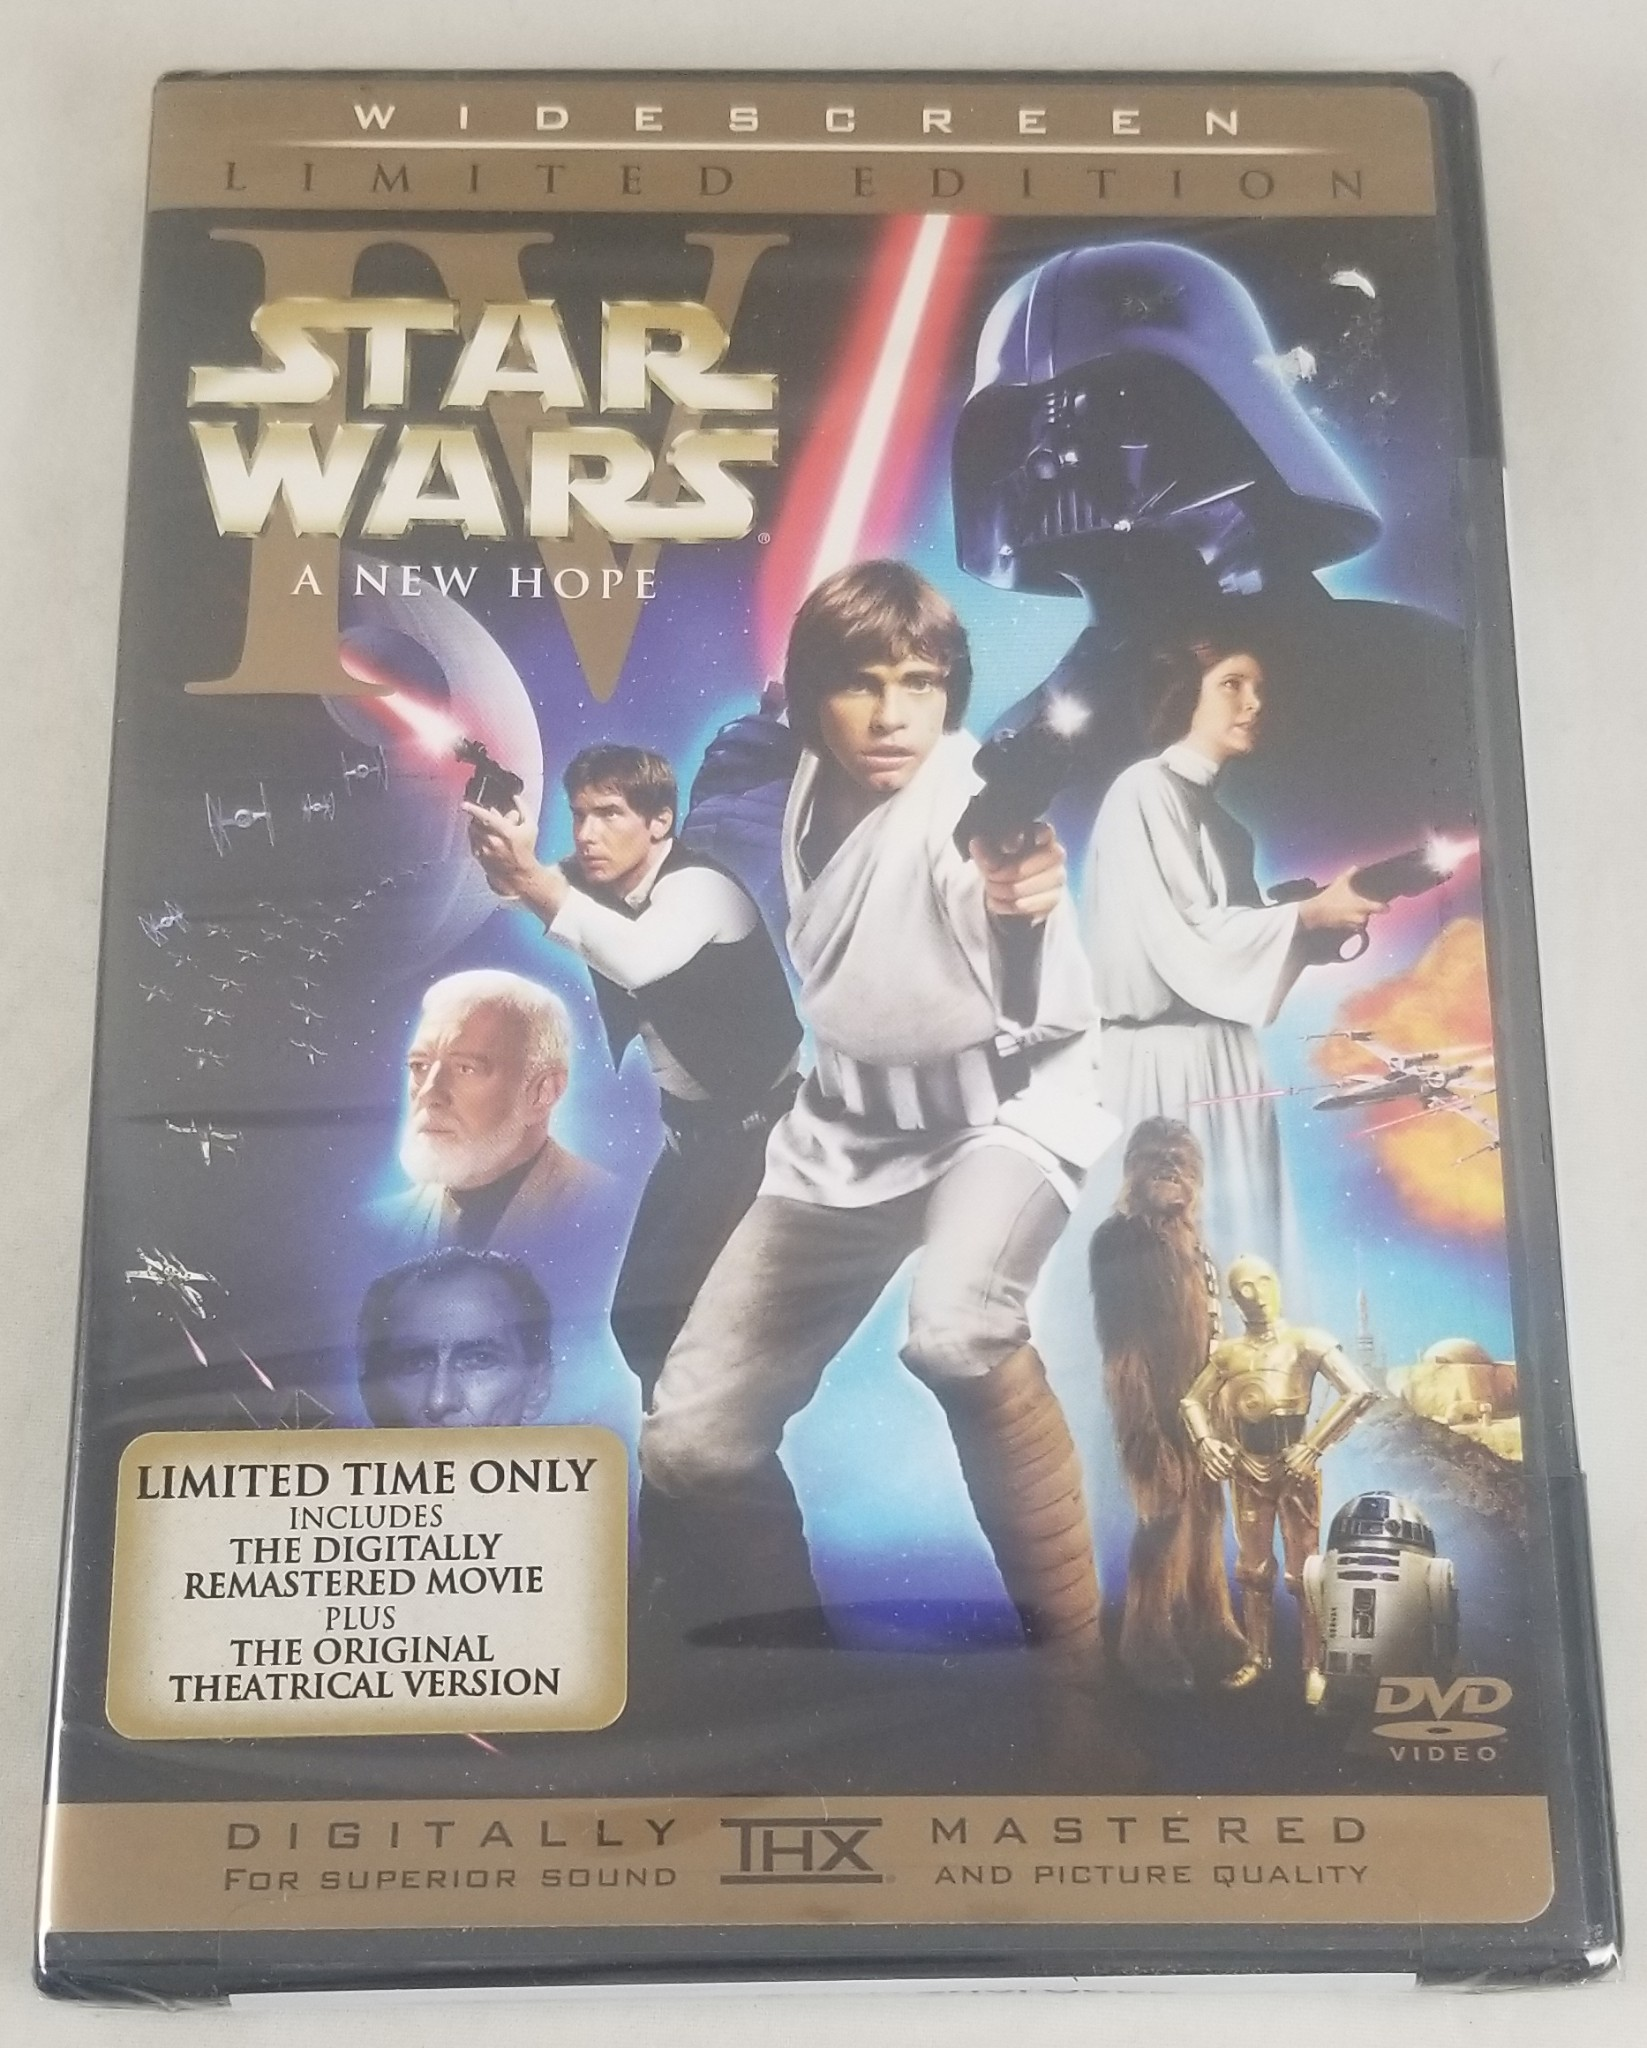 Star Wars Episode Iv A New Hope 2 Disc Dvd Wide Screen Limited Edition Sealed 24543263739 Ebay